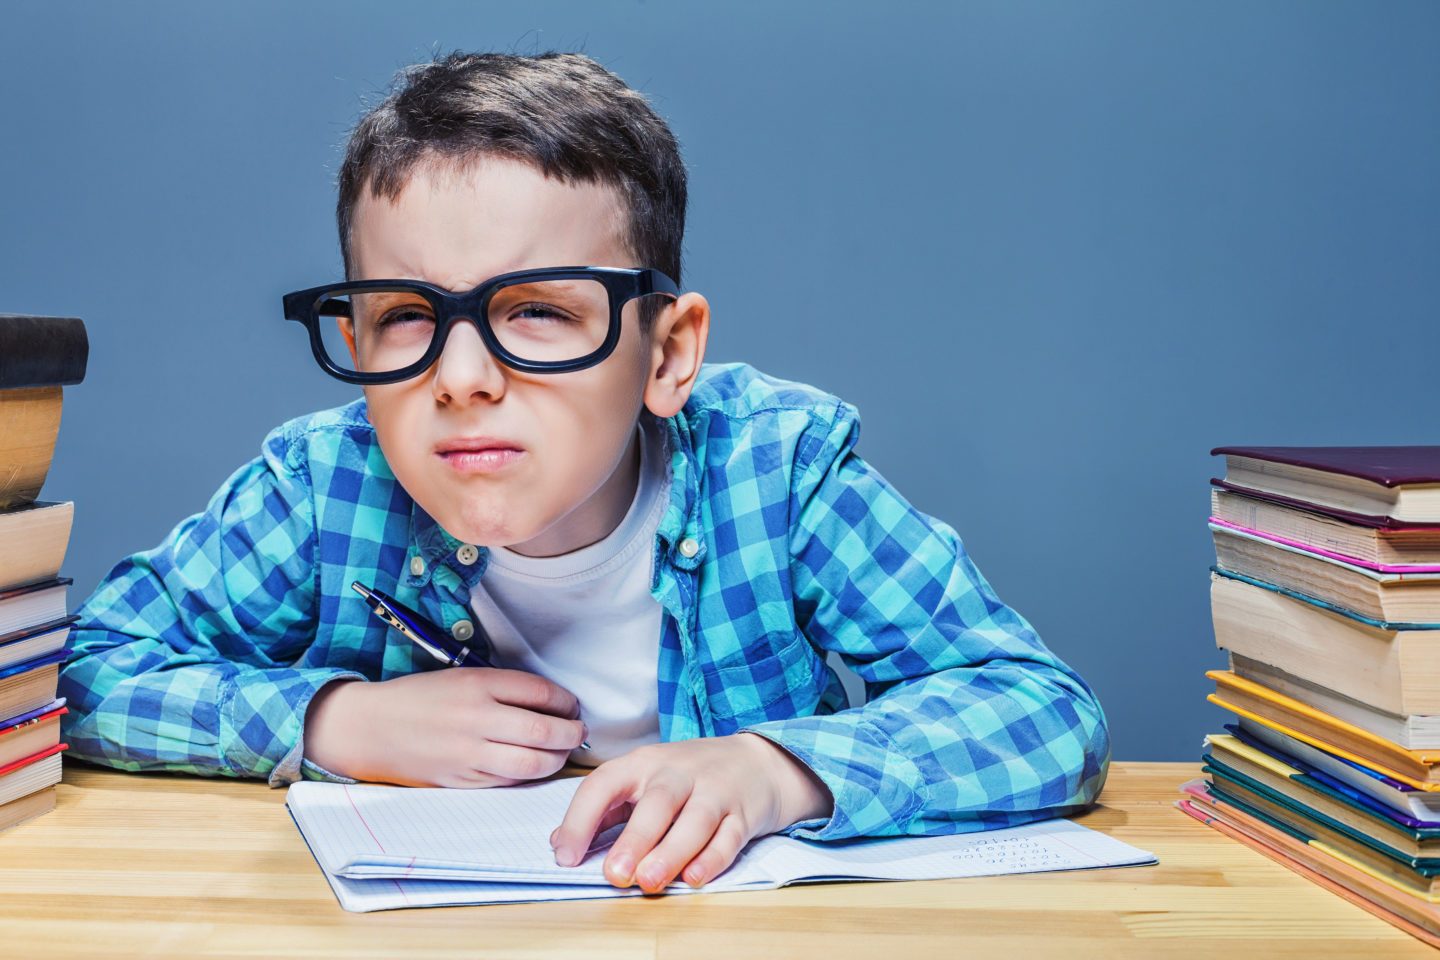 Recognizing Vision Issues in Children - First Eye Care DFW